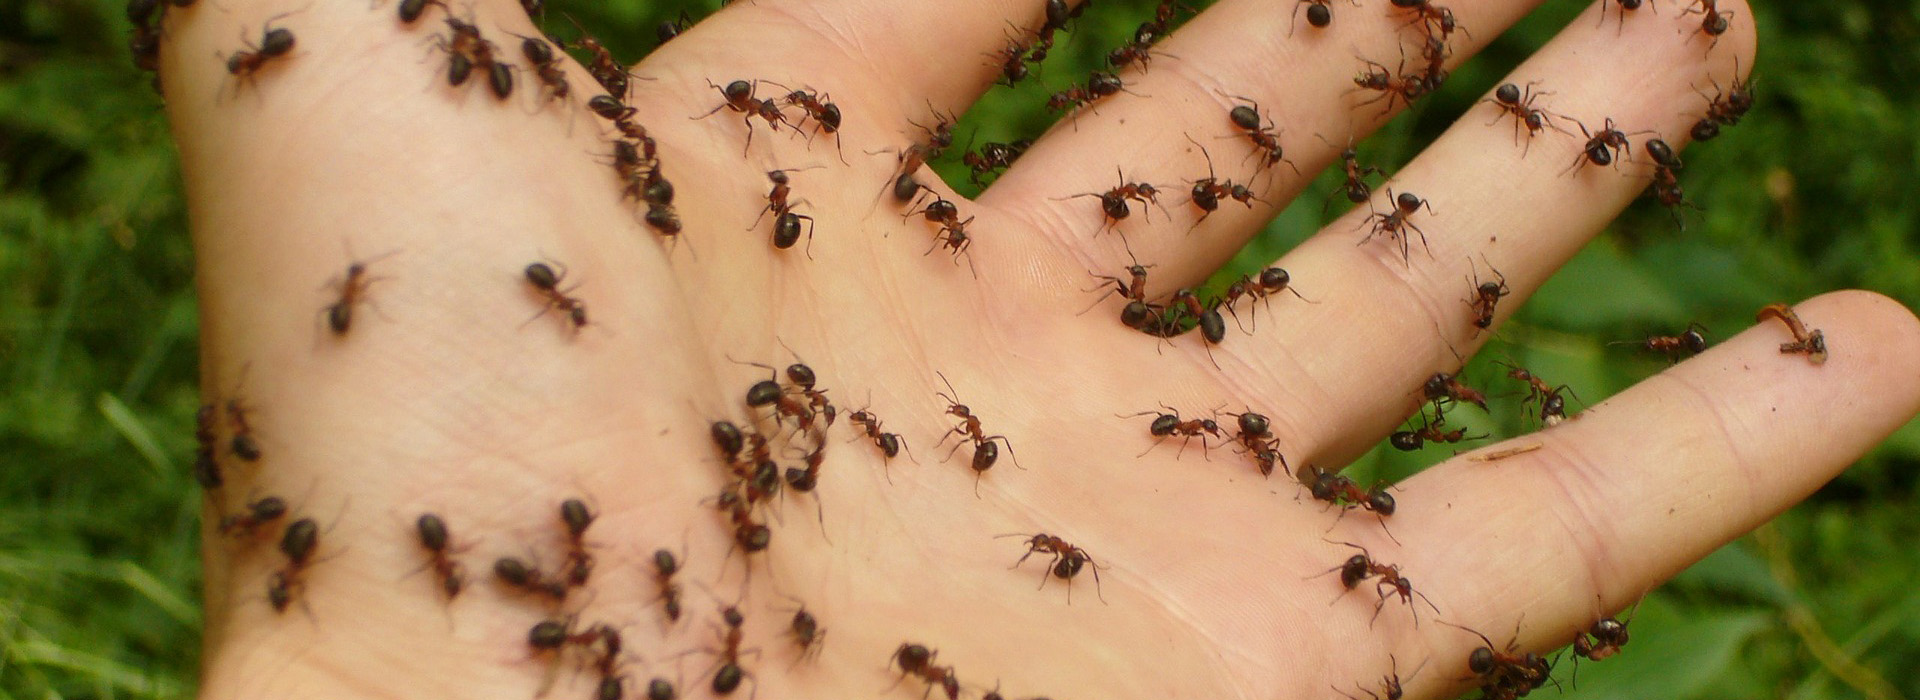 Ant Control - MICROBEE Environmental - London- 01